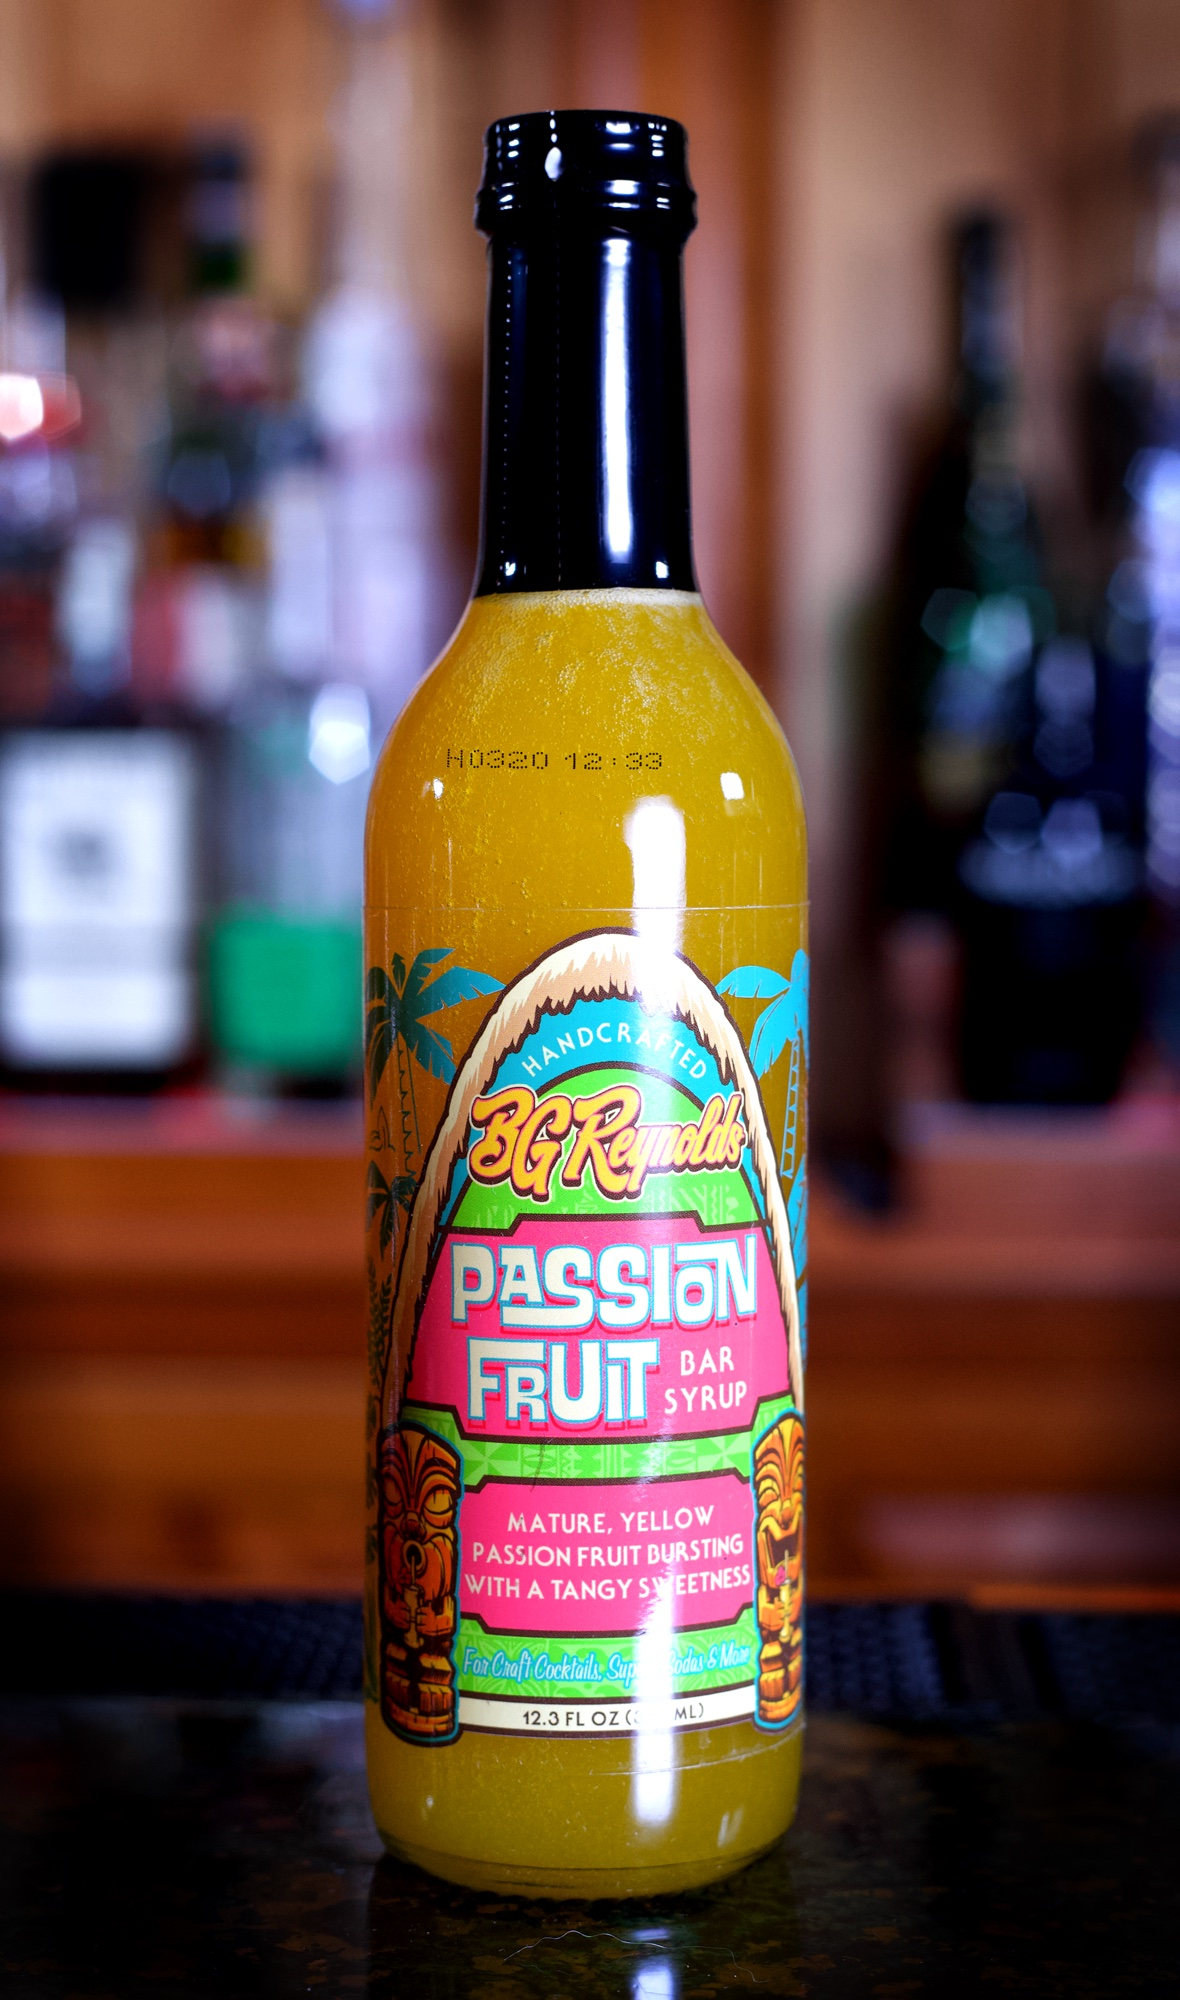 B.G. Reynolds Passion Fruit Syrup